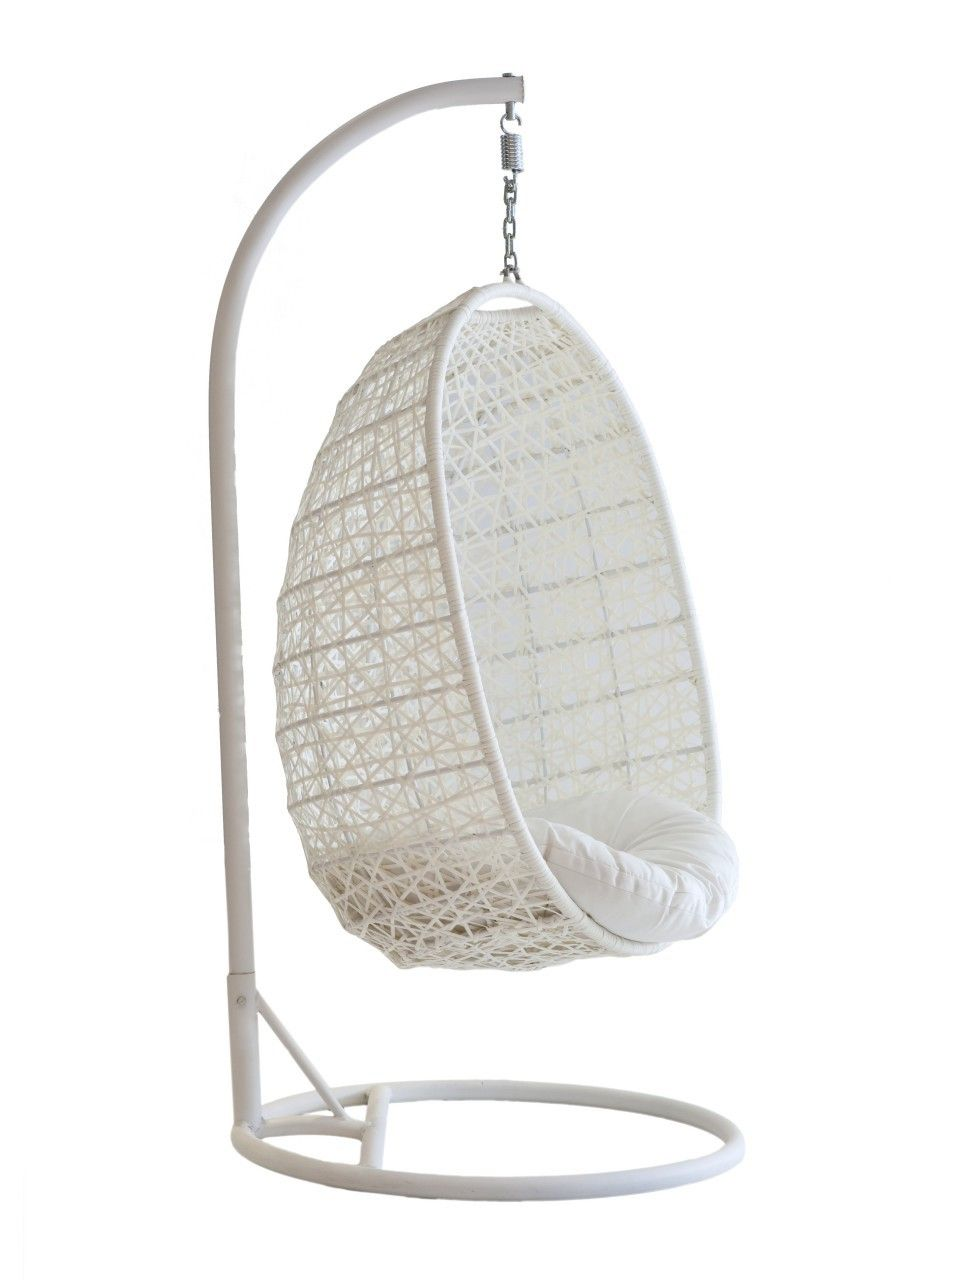 Furniture Charming White Viva Design Cora Hanging Chair